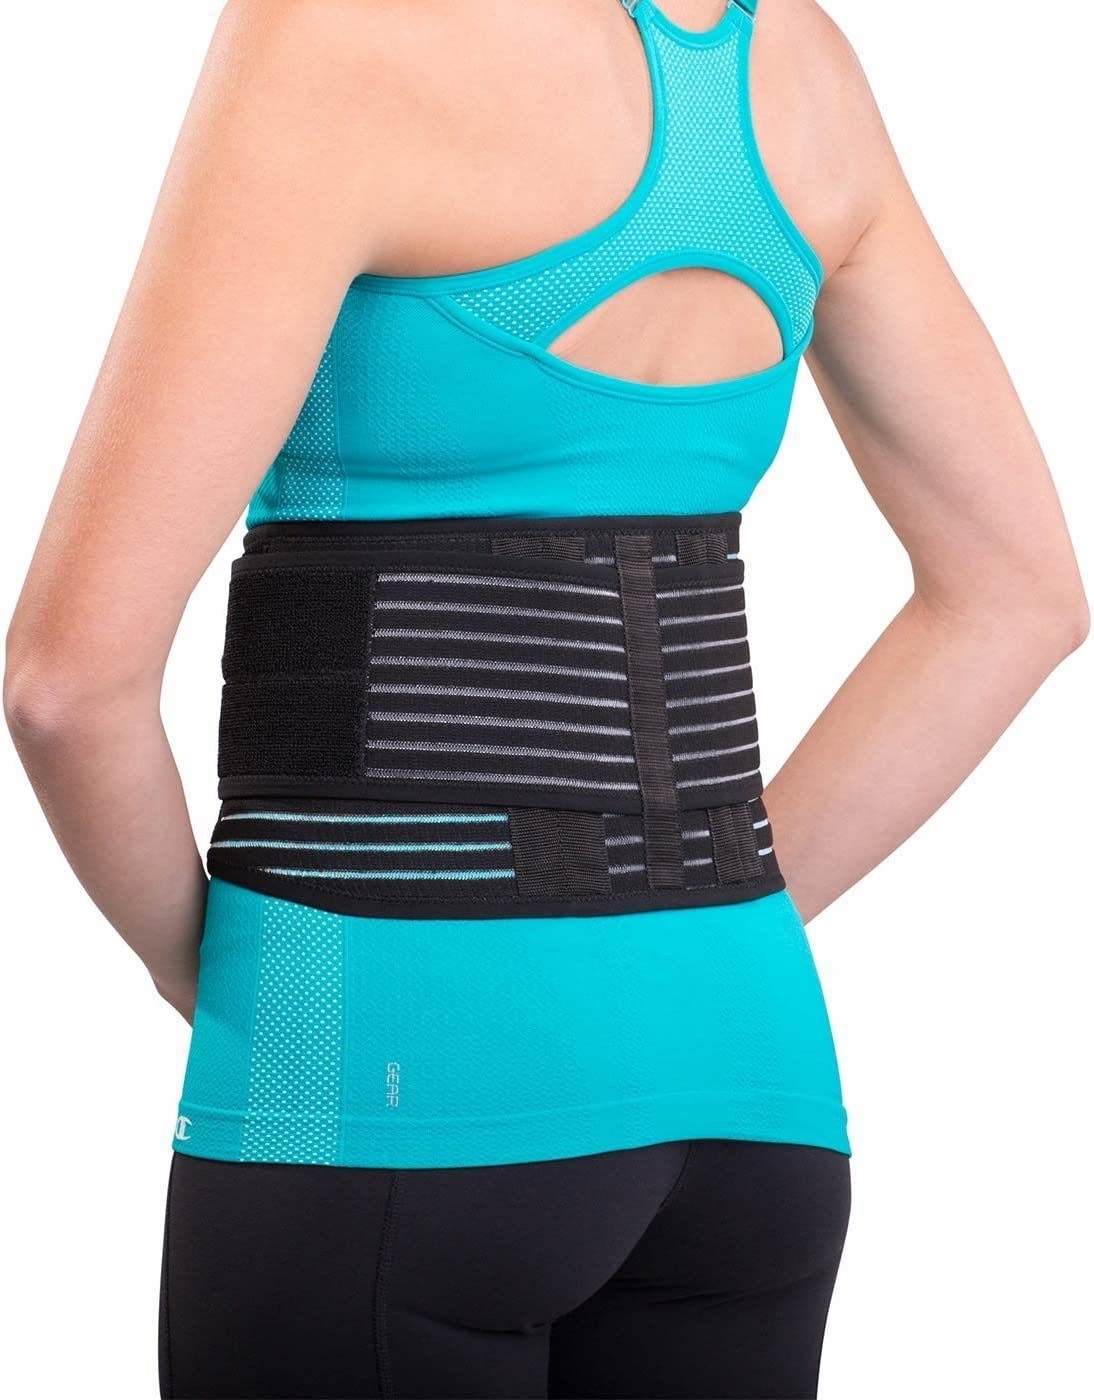 """DonJoy Advantage DA161BW01-BLK-S, M Stabilizing Back Support for Low Back Pains, Strains, Comfortable Foam Padding with Stretch Fabric, Adjustable to fit Small to Medium, 29"""" to 37"""""""